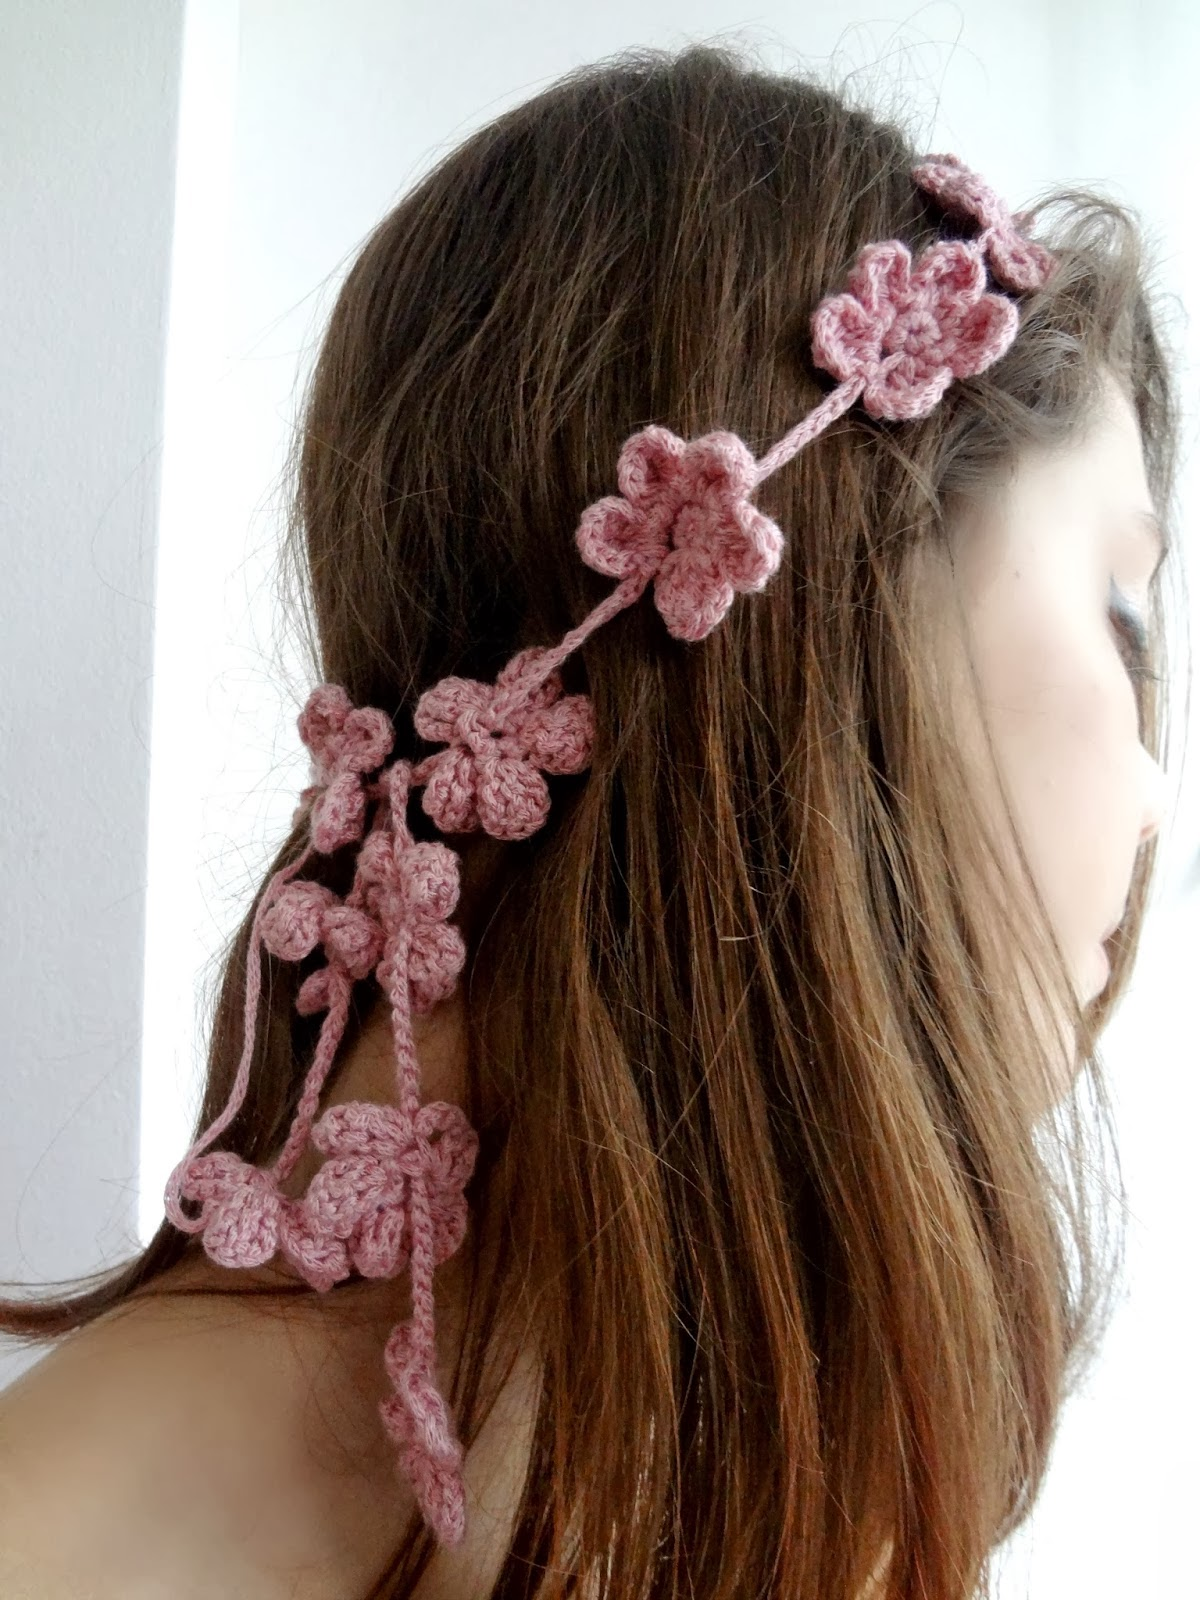 http://thelittletreasures.blogspot.com/2014/02/forget-me-not-headband-free-tutorial.html